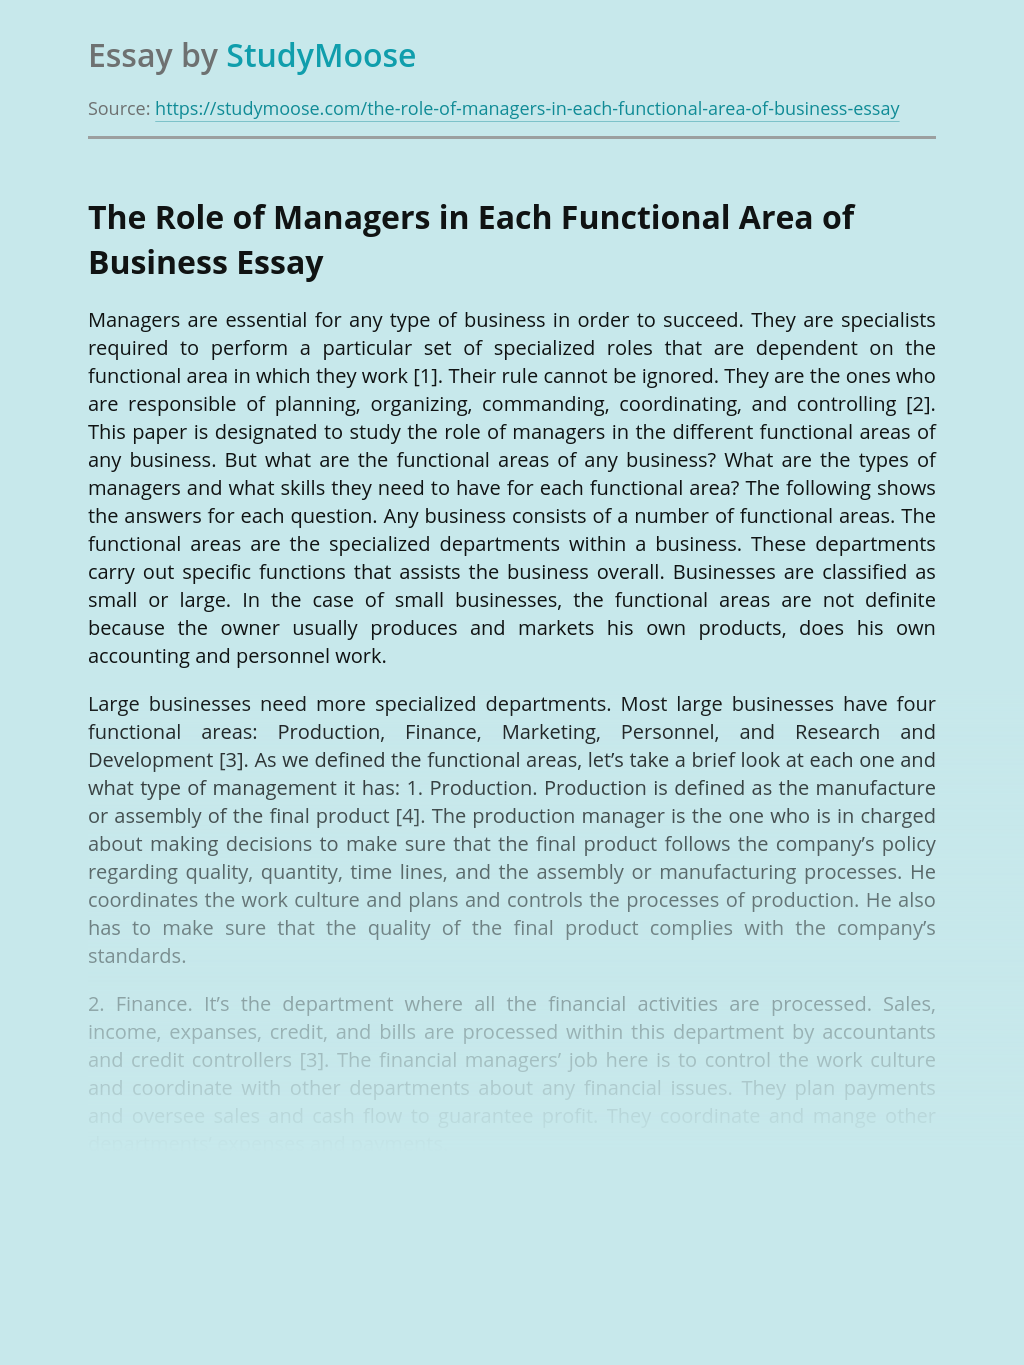 The Role of Managers in Each Functional Area of Business